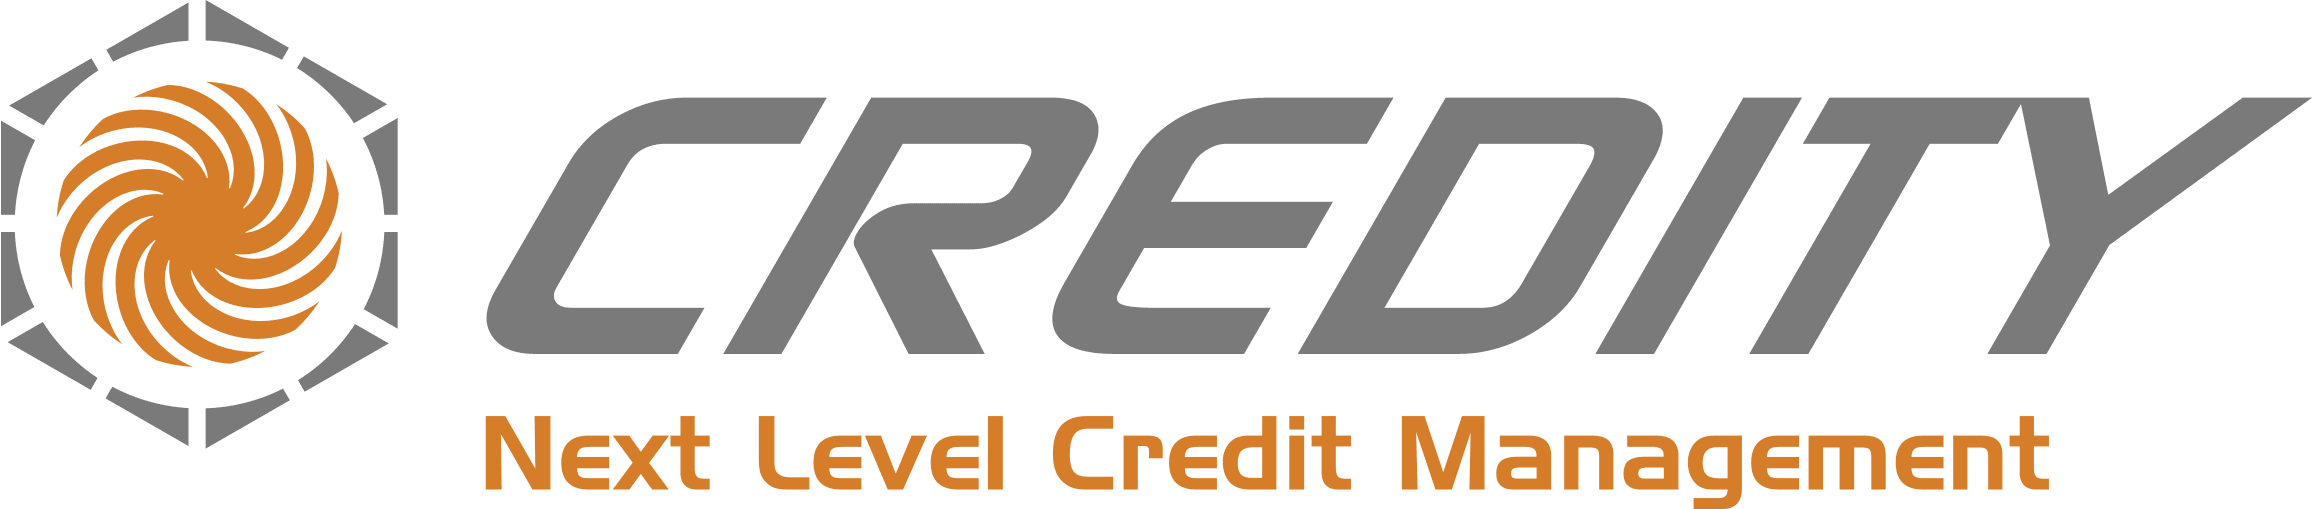 CREDITY - Next Level Credit Management